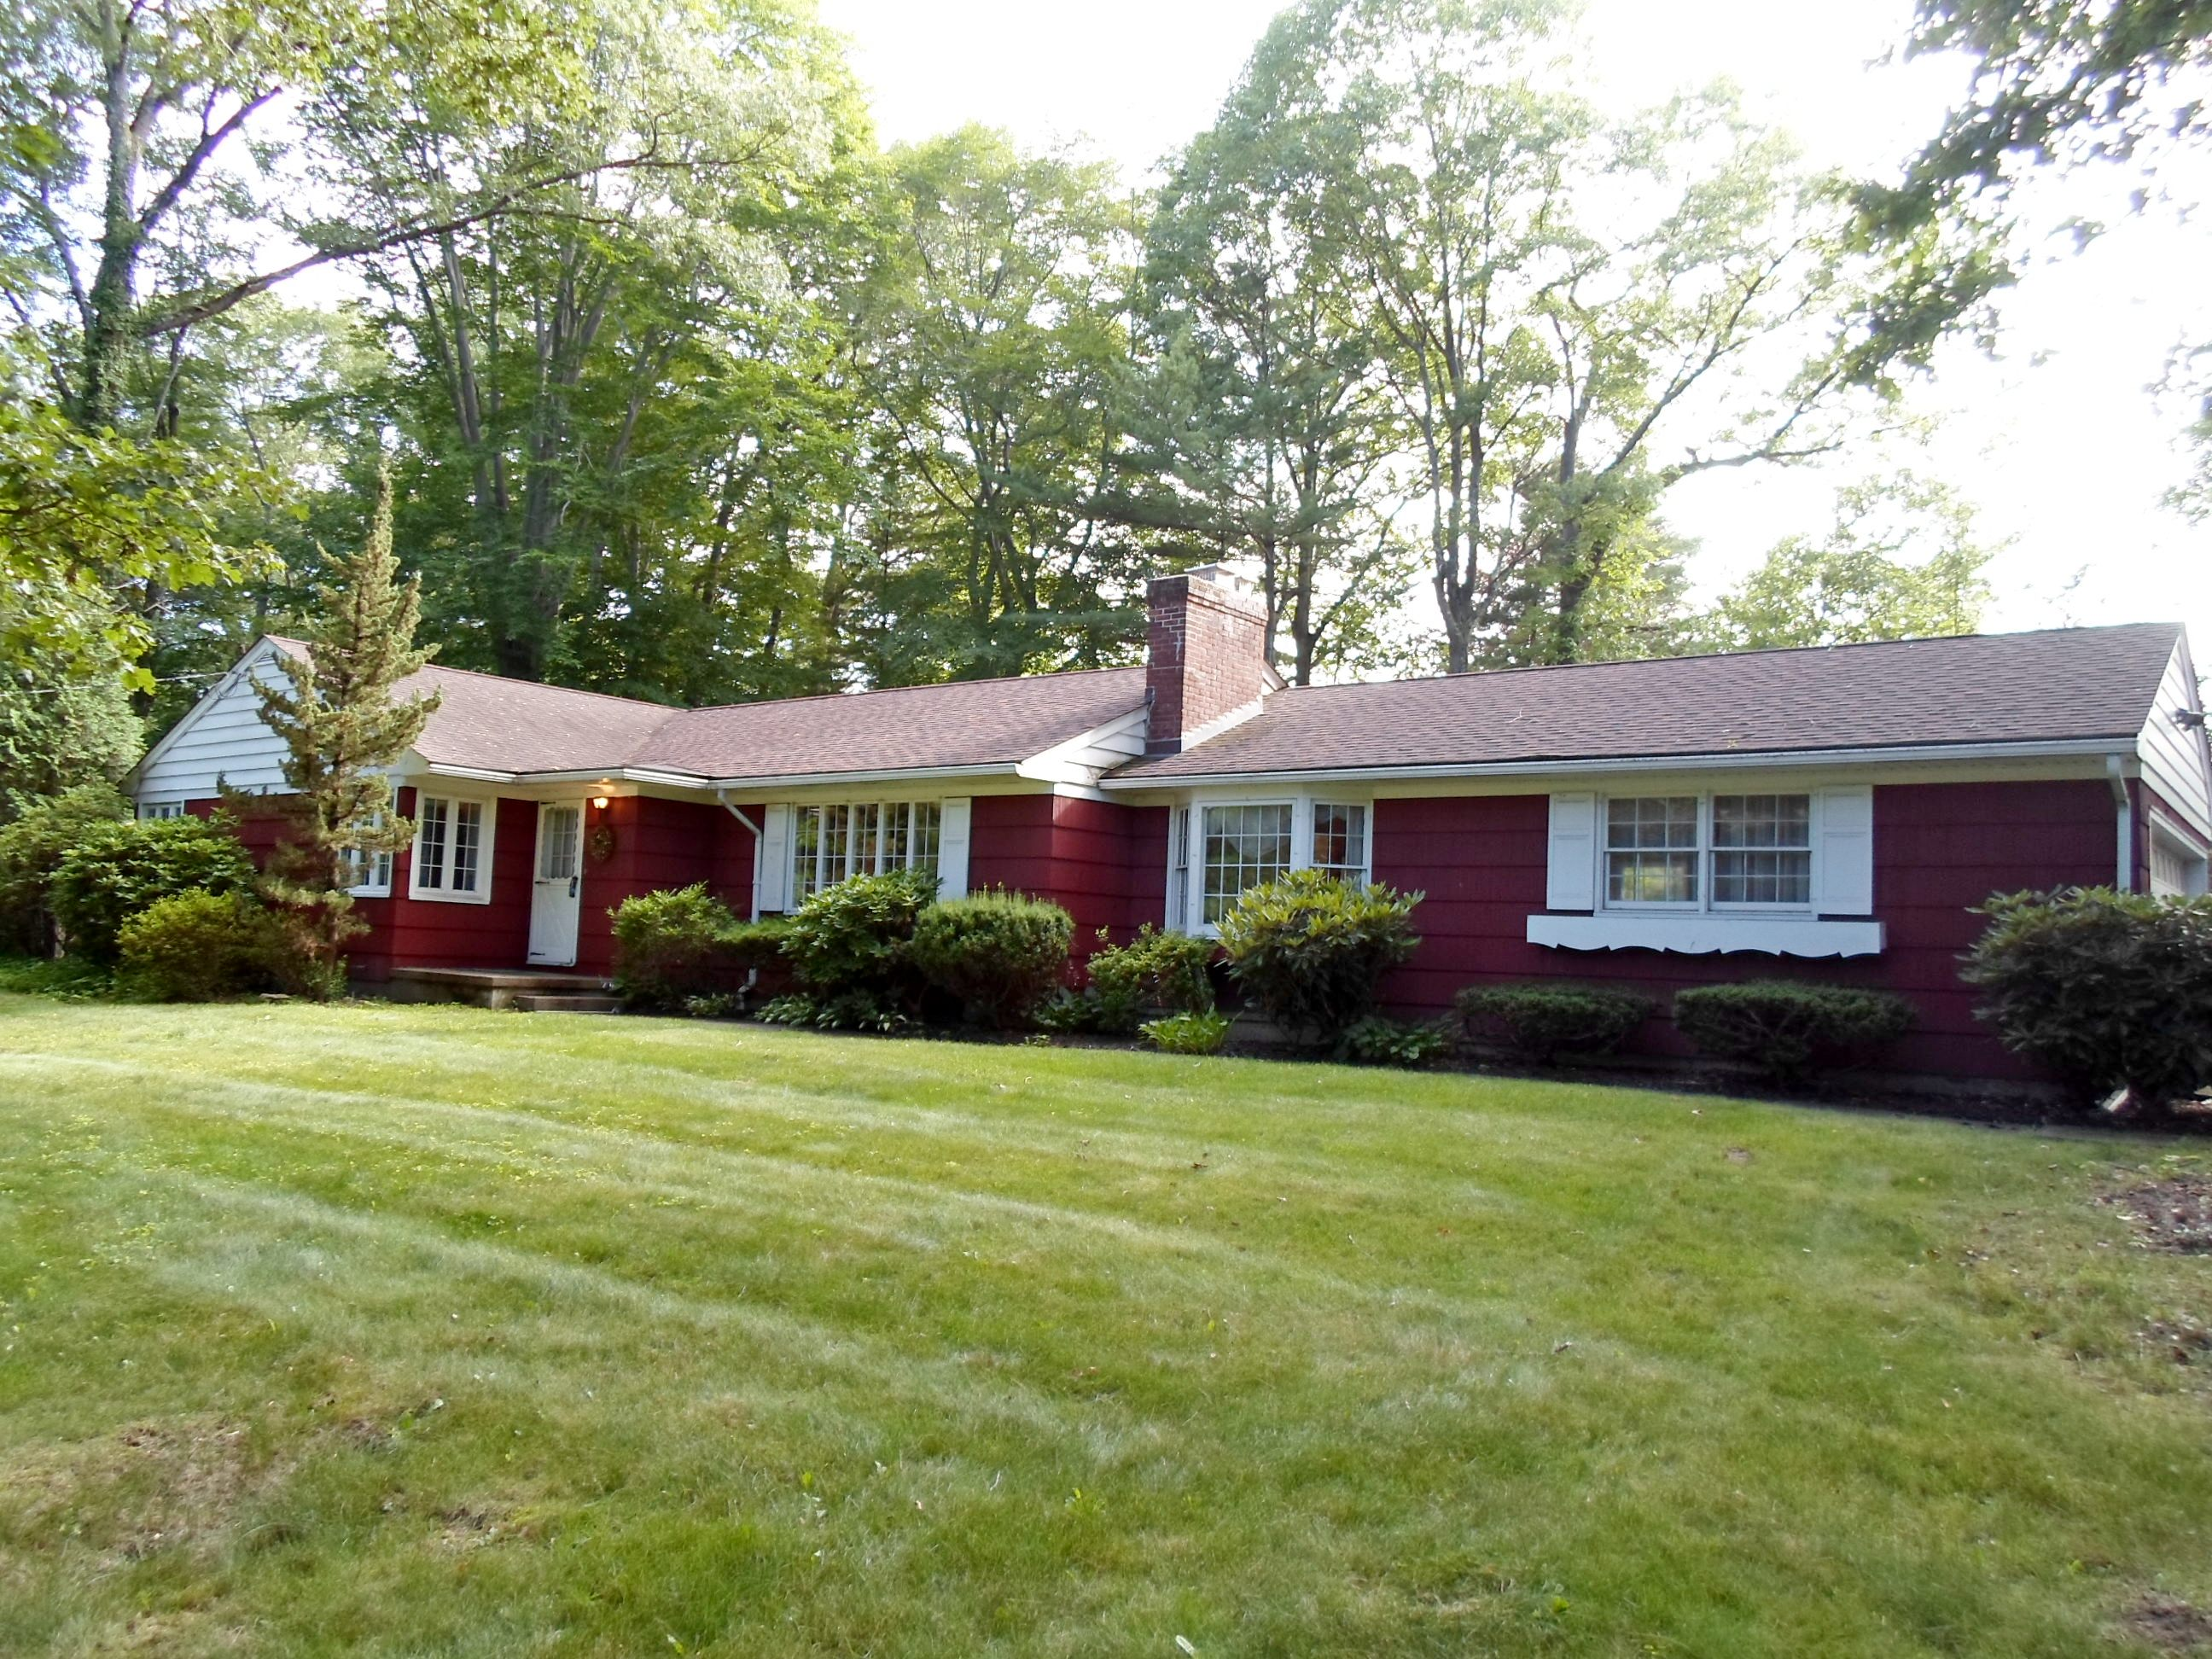 Single Family Home for Sale at Great Location 83 North Little Tor Rd. New City, New York 10956 United States